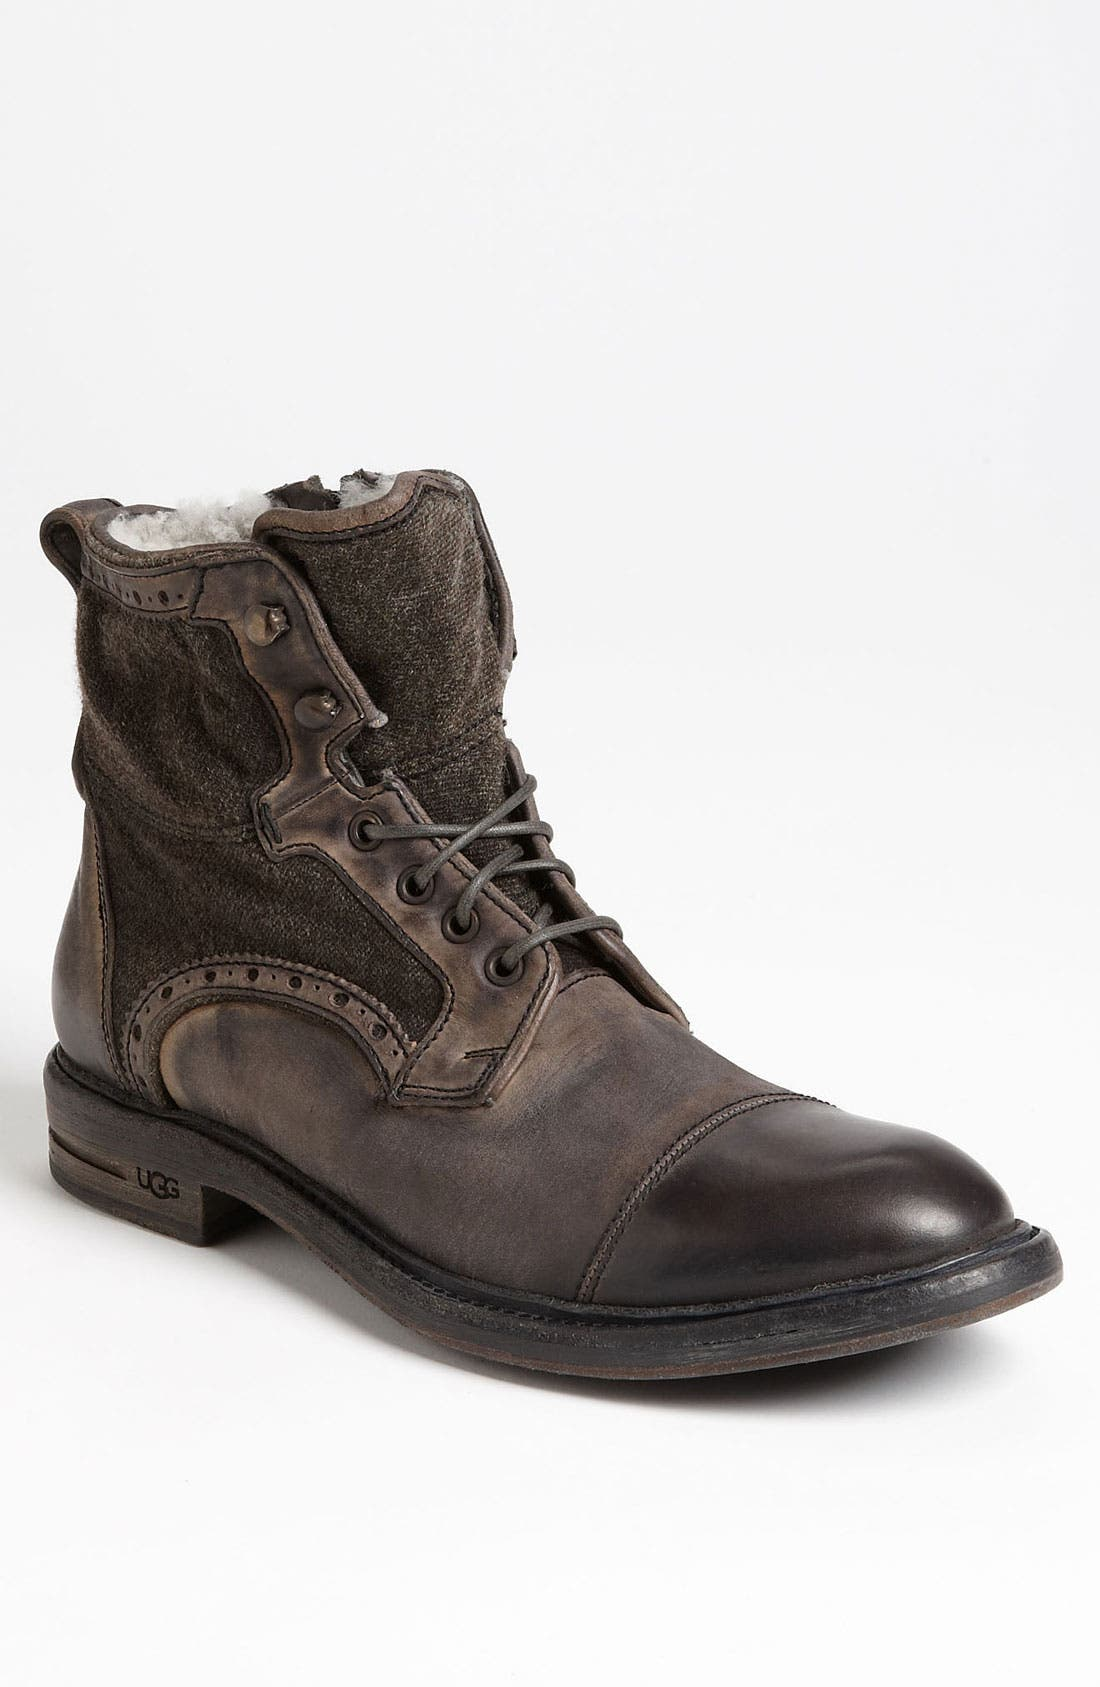 Alternate Image 1 Selected - UGG® Collection 'Malden' Cap Toe Boot (Men)